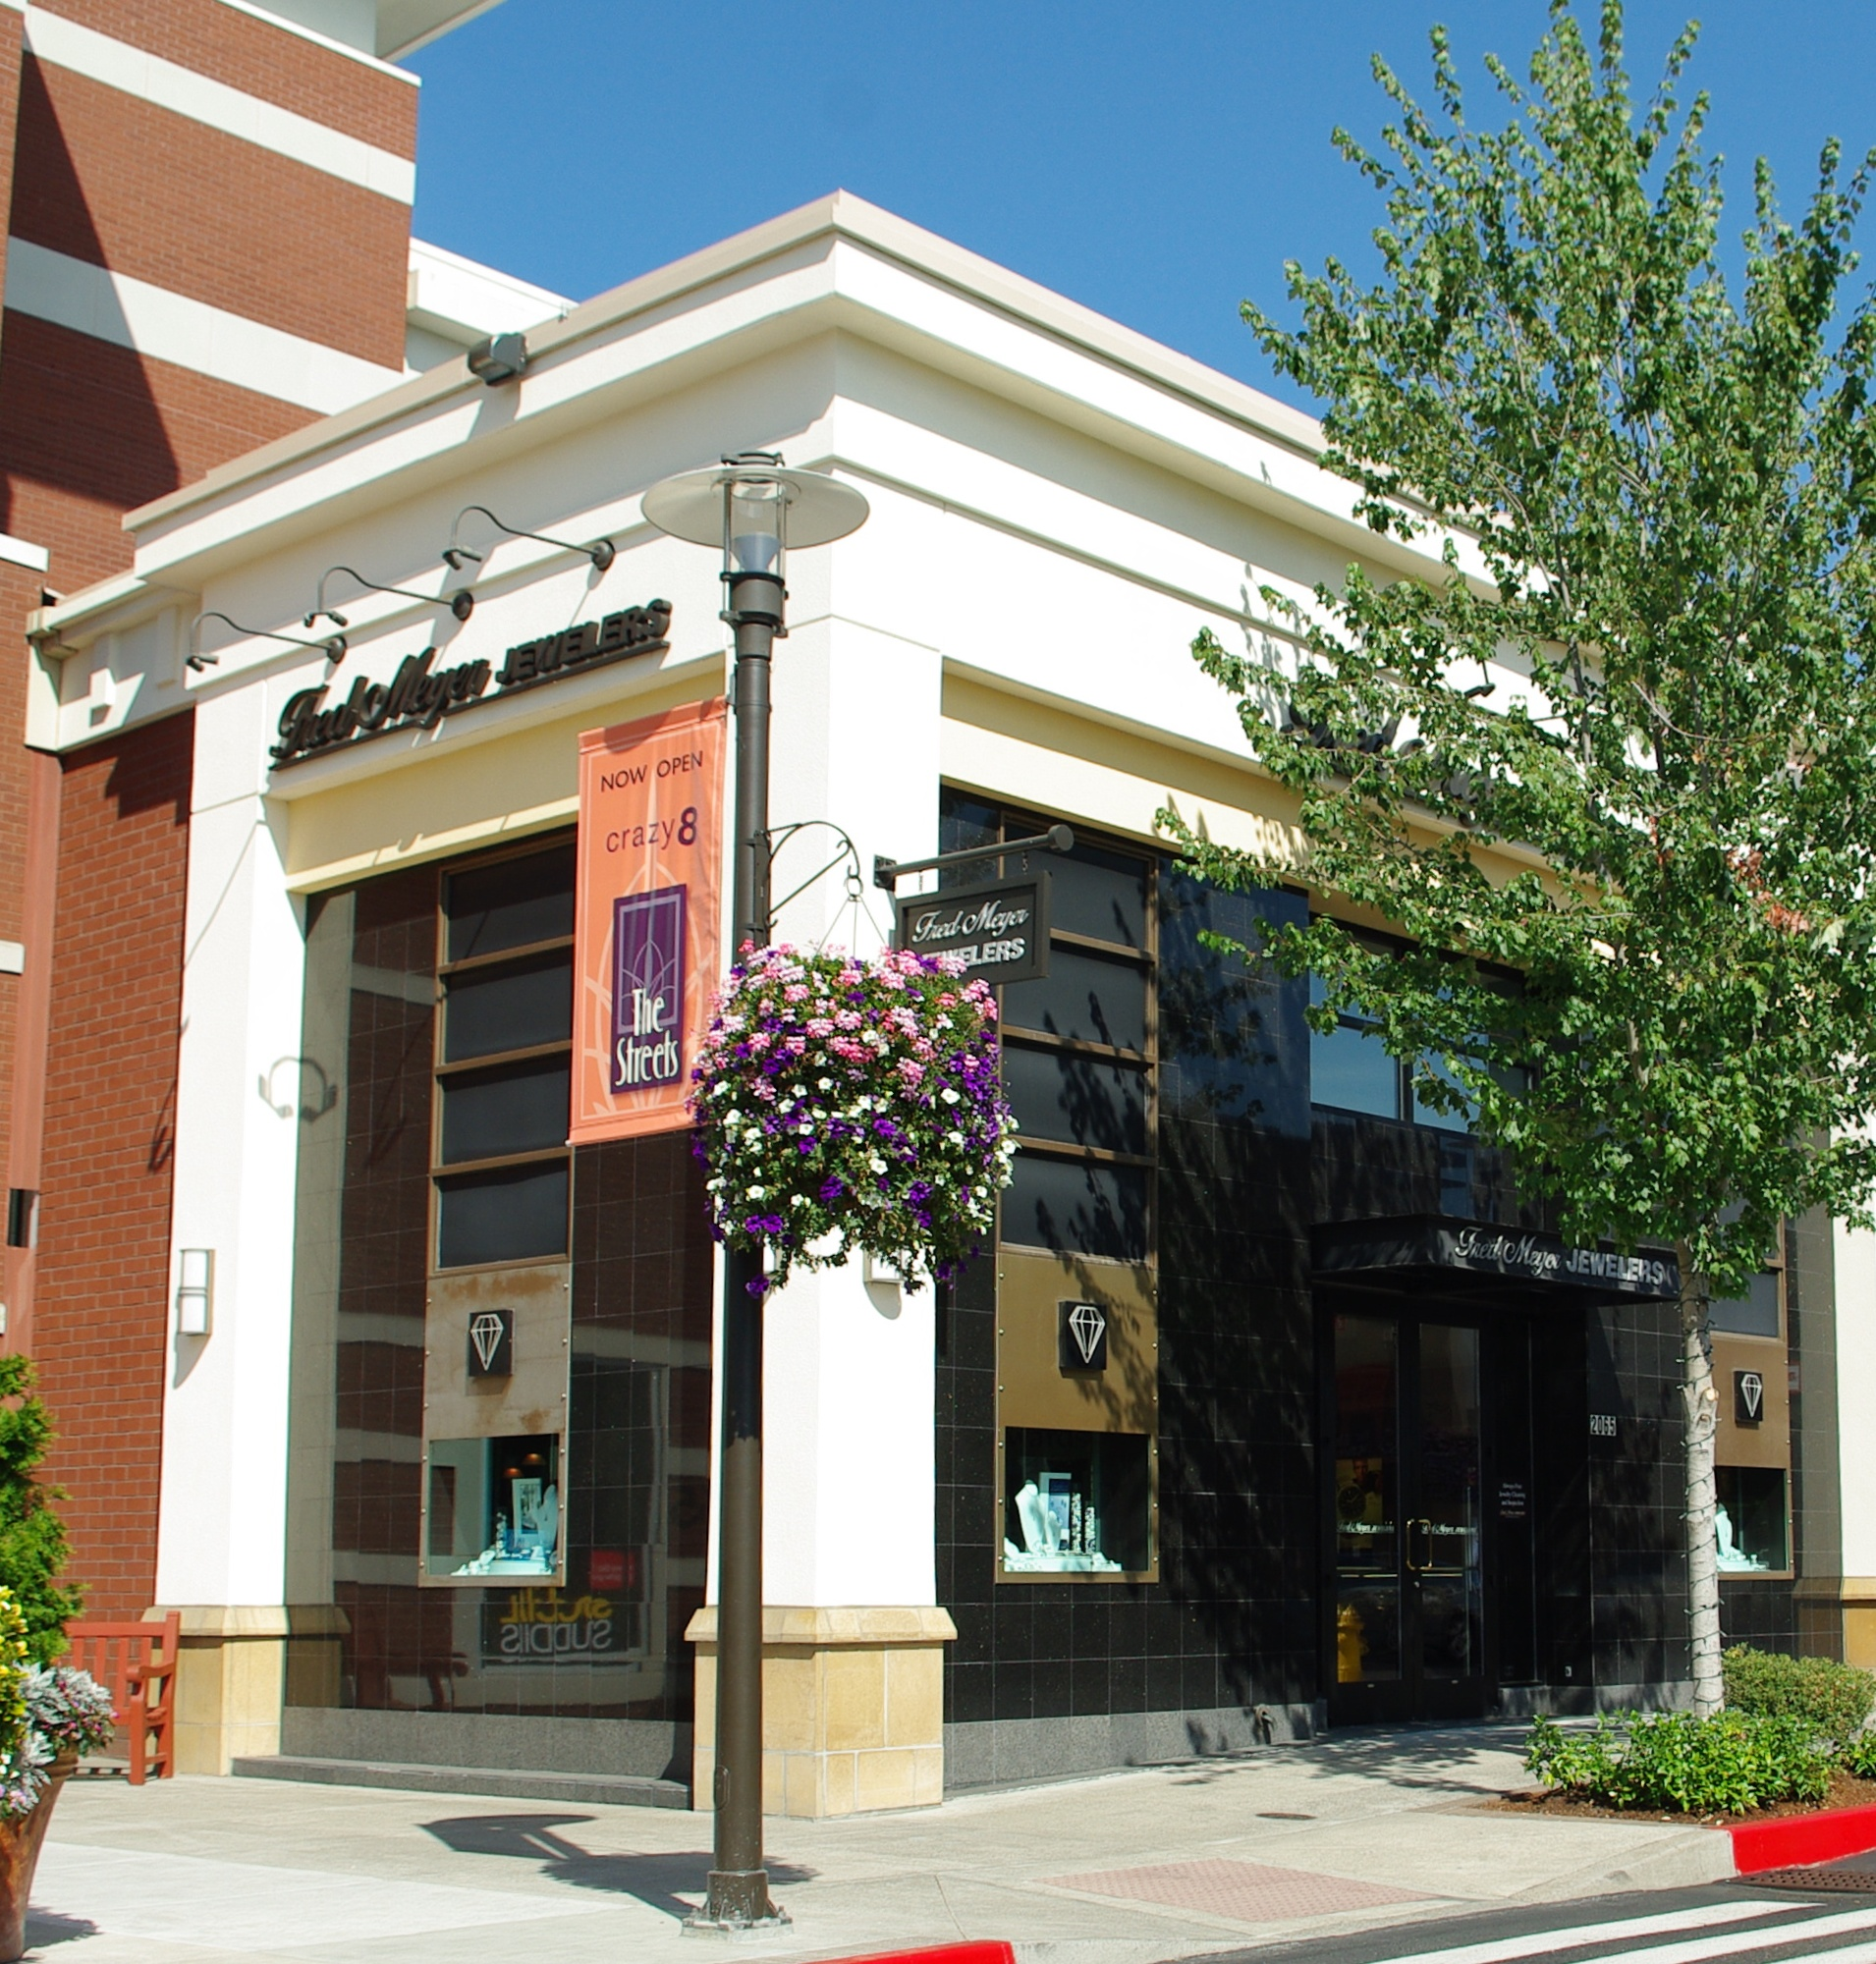 Mixing main street charm with shopping center conveniences; The Streets of Tanasbourne is a great place to meet friends for lunch or dinner, fabulous tax-free shopping, or just coffee by the fountain.3/5(39).